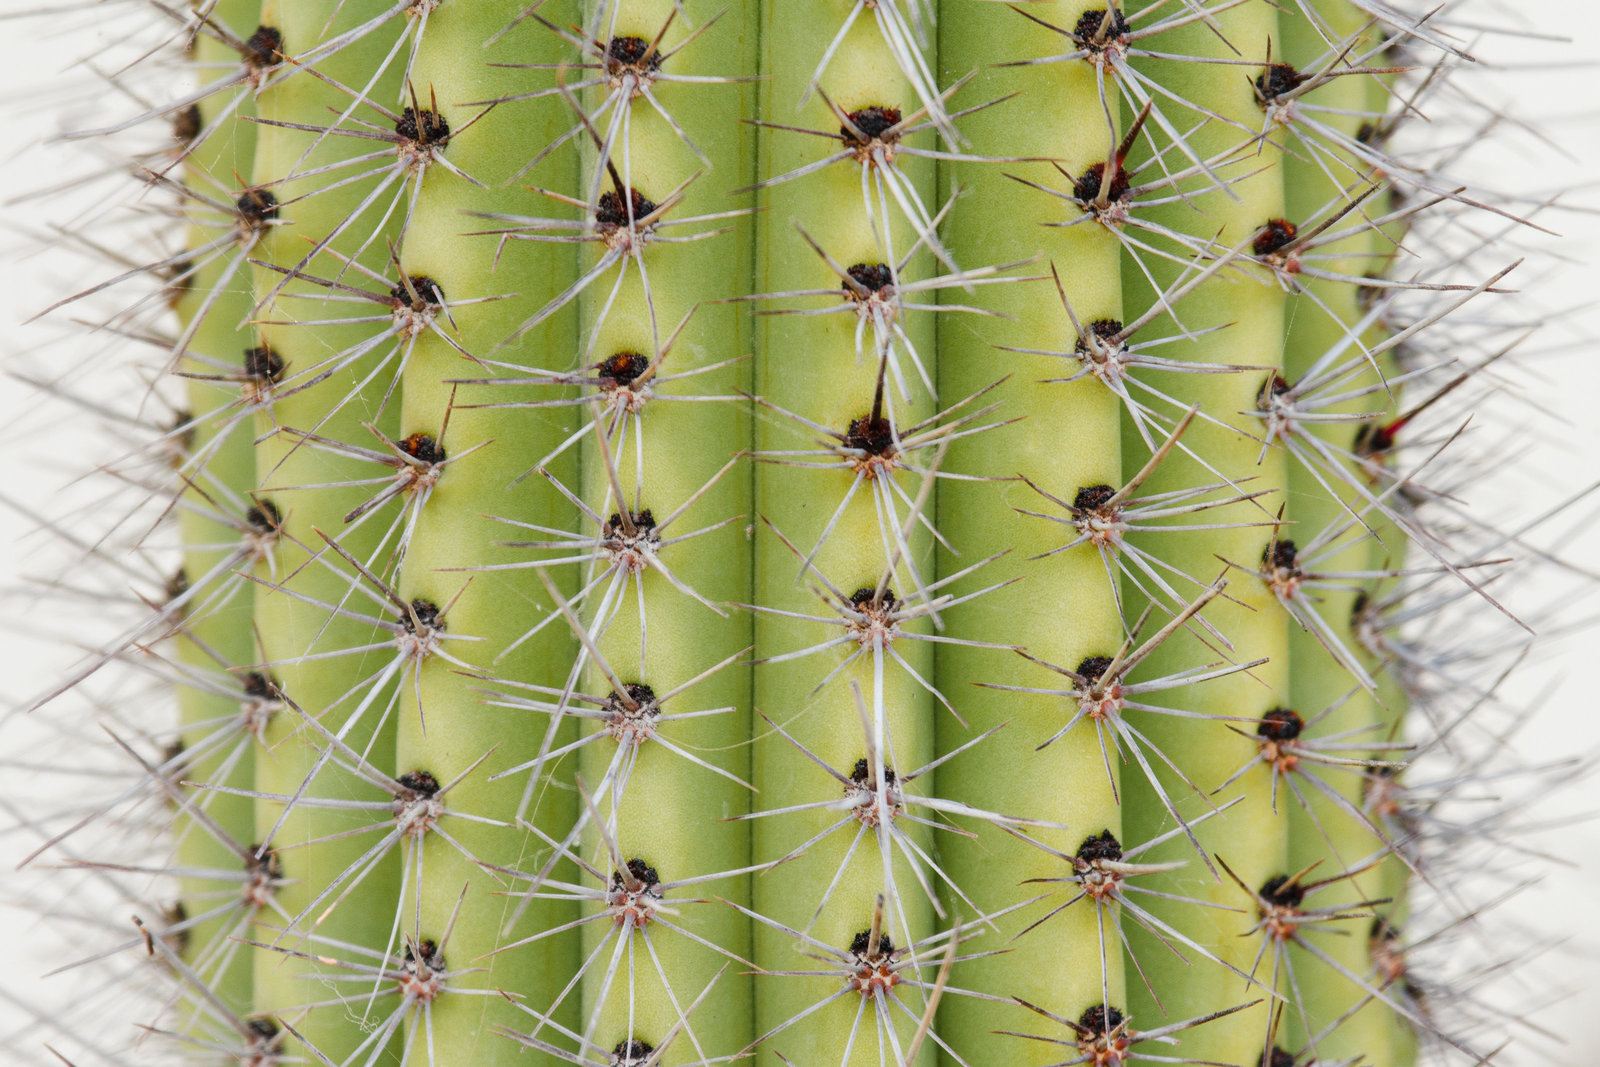 cameron-zegers-travel-photographer-mexico-cactus